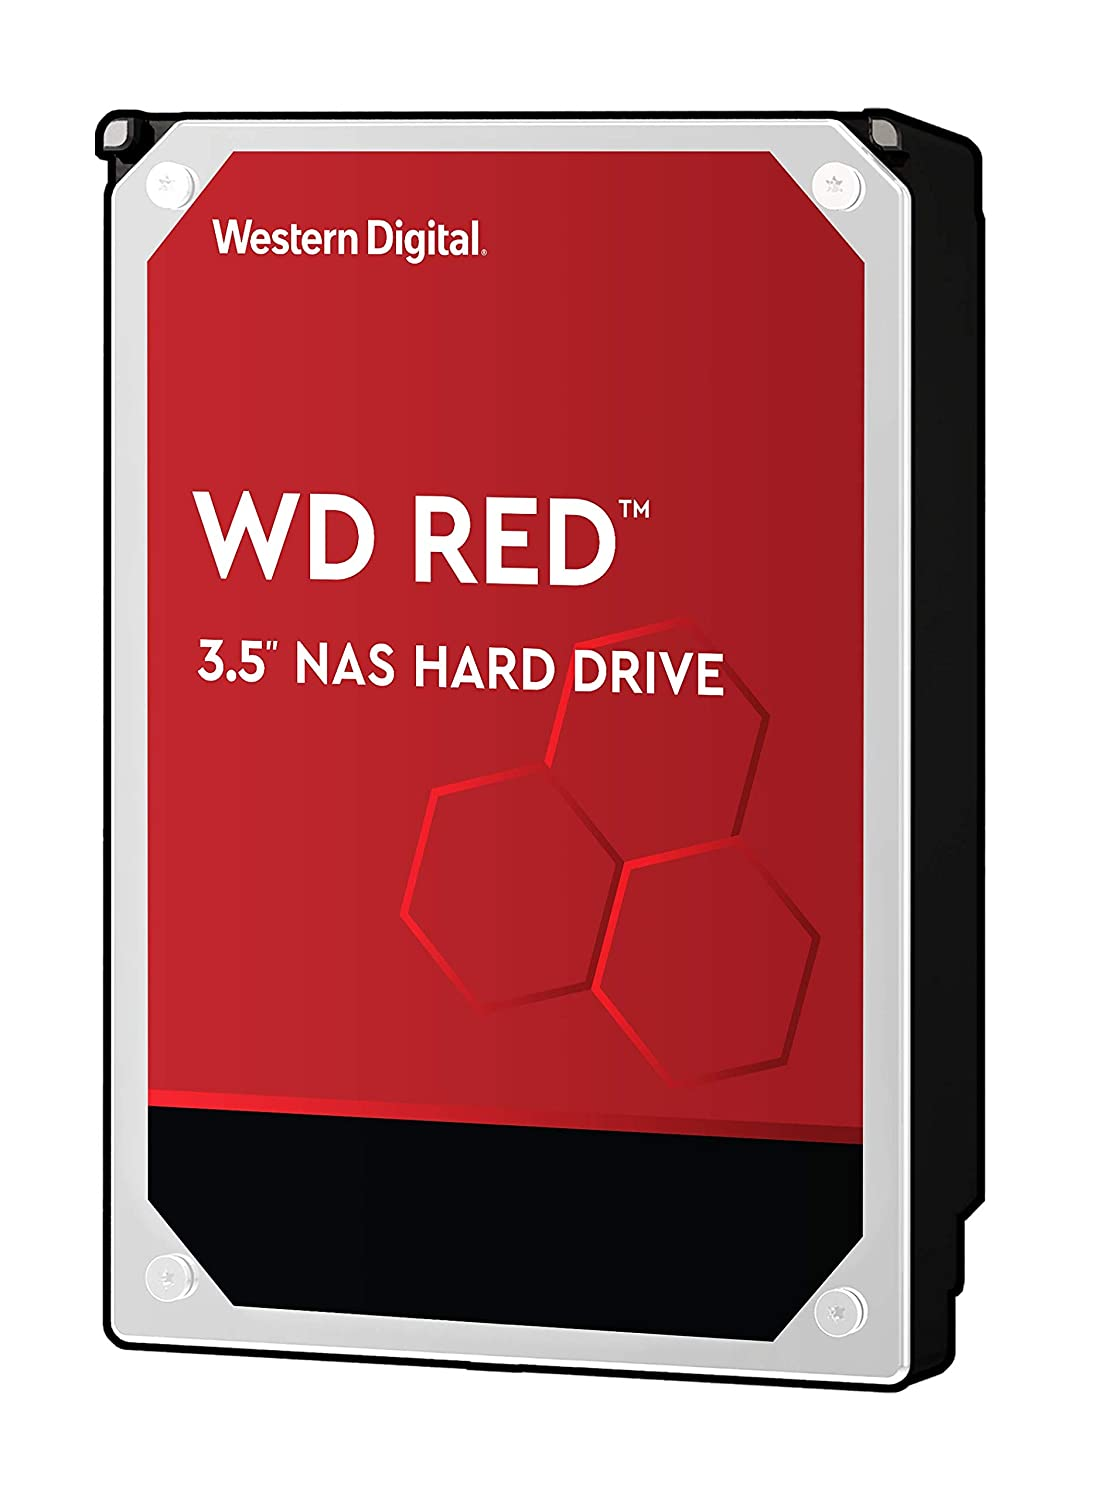 WD, RED, WD10EFRX, Caviar, 1TB, Intellipower, DDR2/150MBs/3.5,